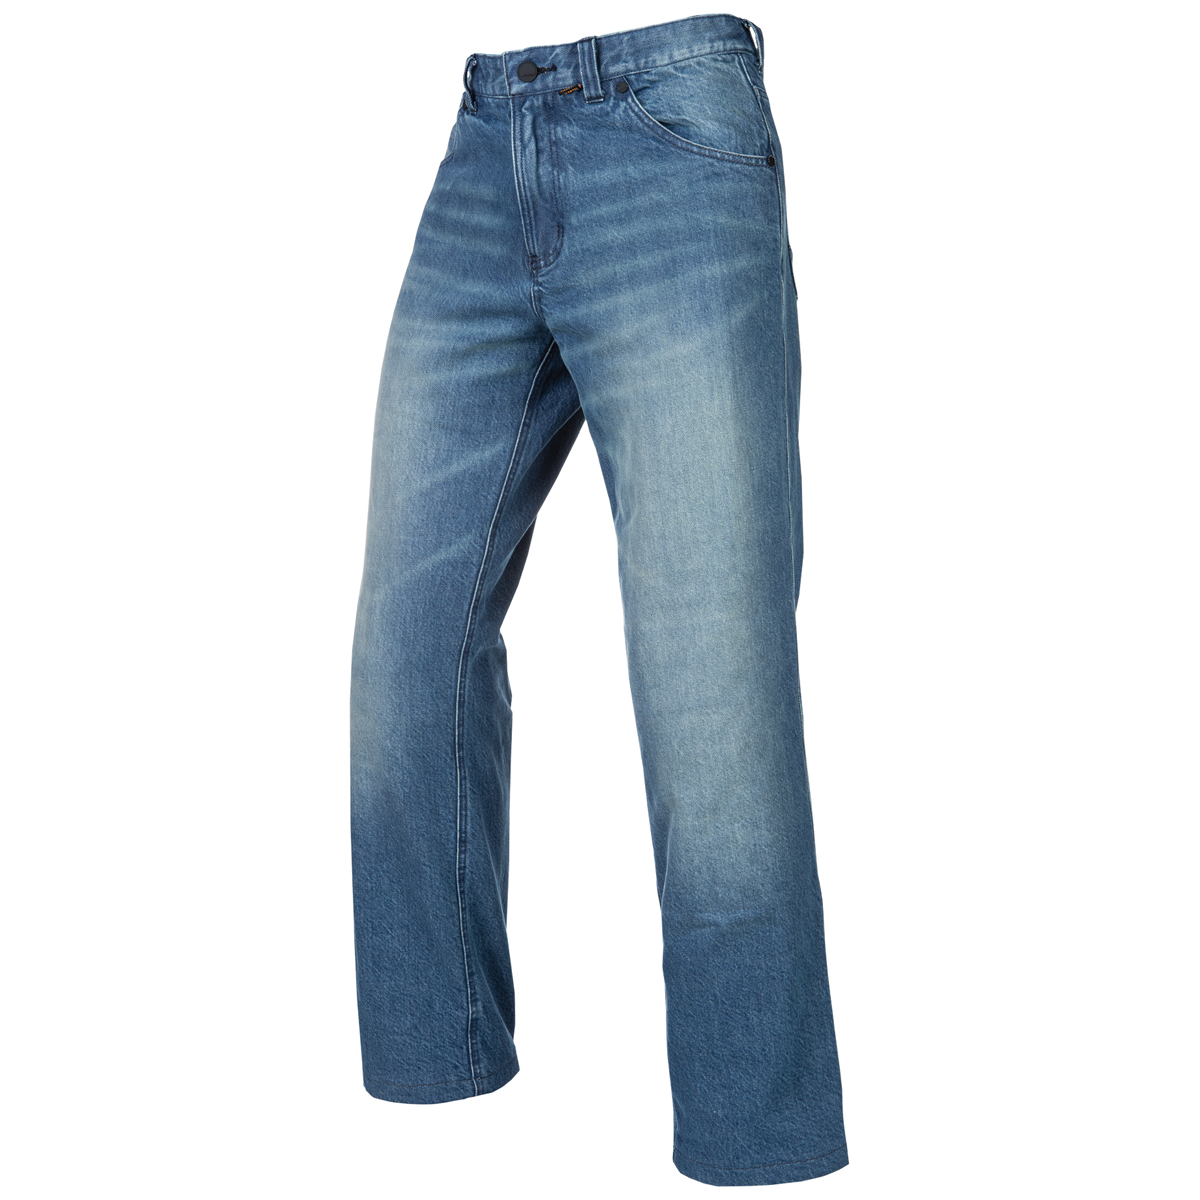 Klim Men's K Fifty 2 Light Blue Riding Jeans